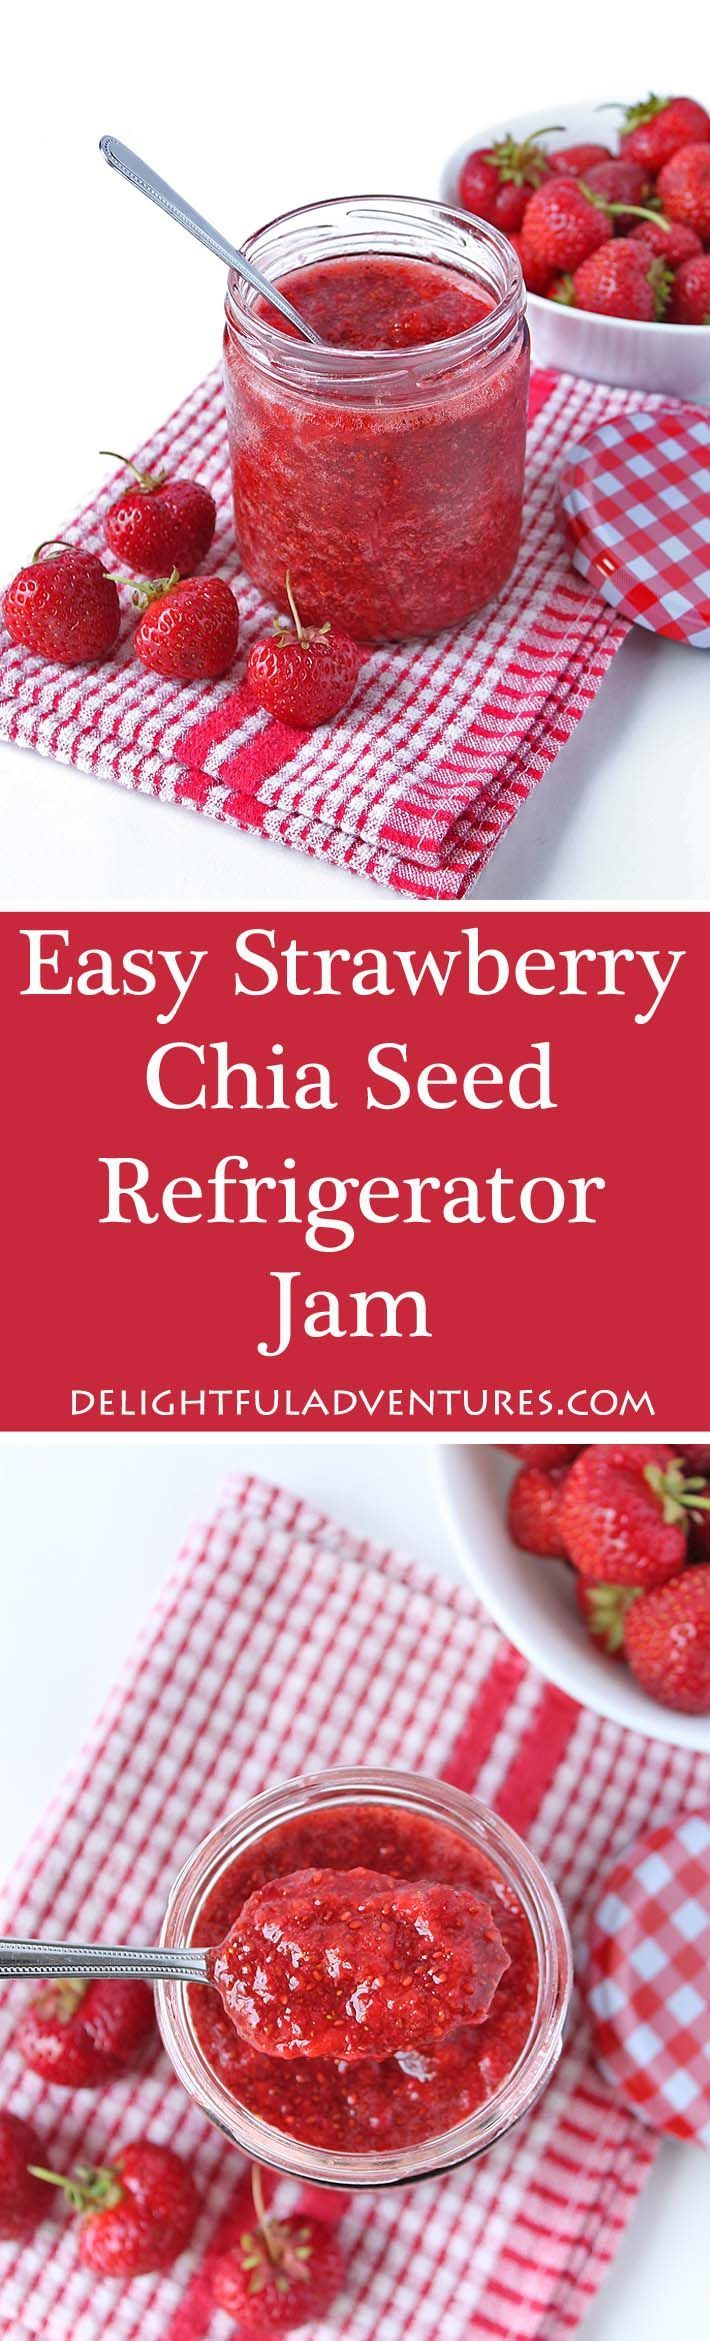 This easy strawberry chia seed refrigerator jam is the simplest jam you can make! There's no boiling involved and it only contains 4 simple ingredients. via @delighfuladv